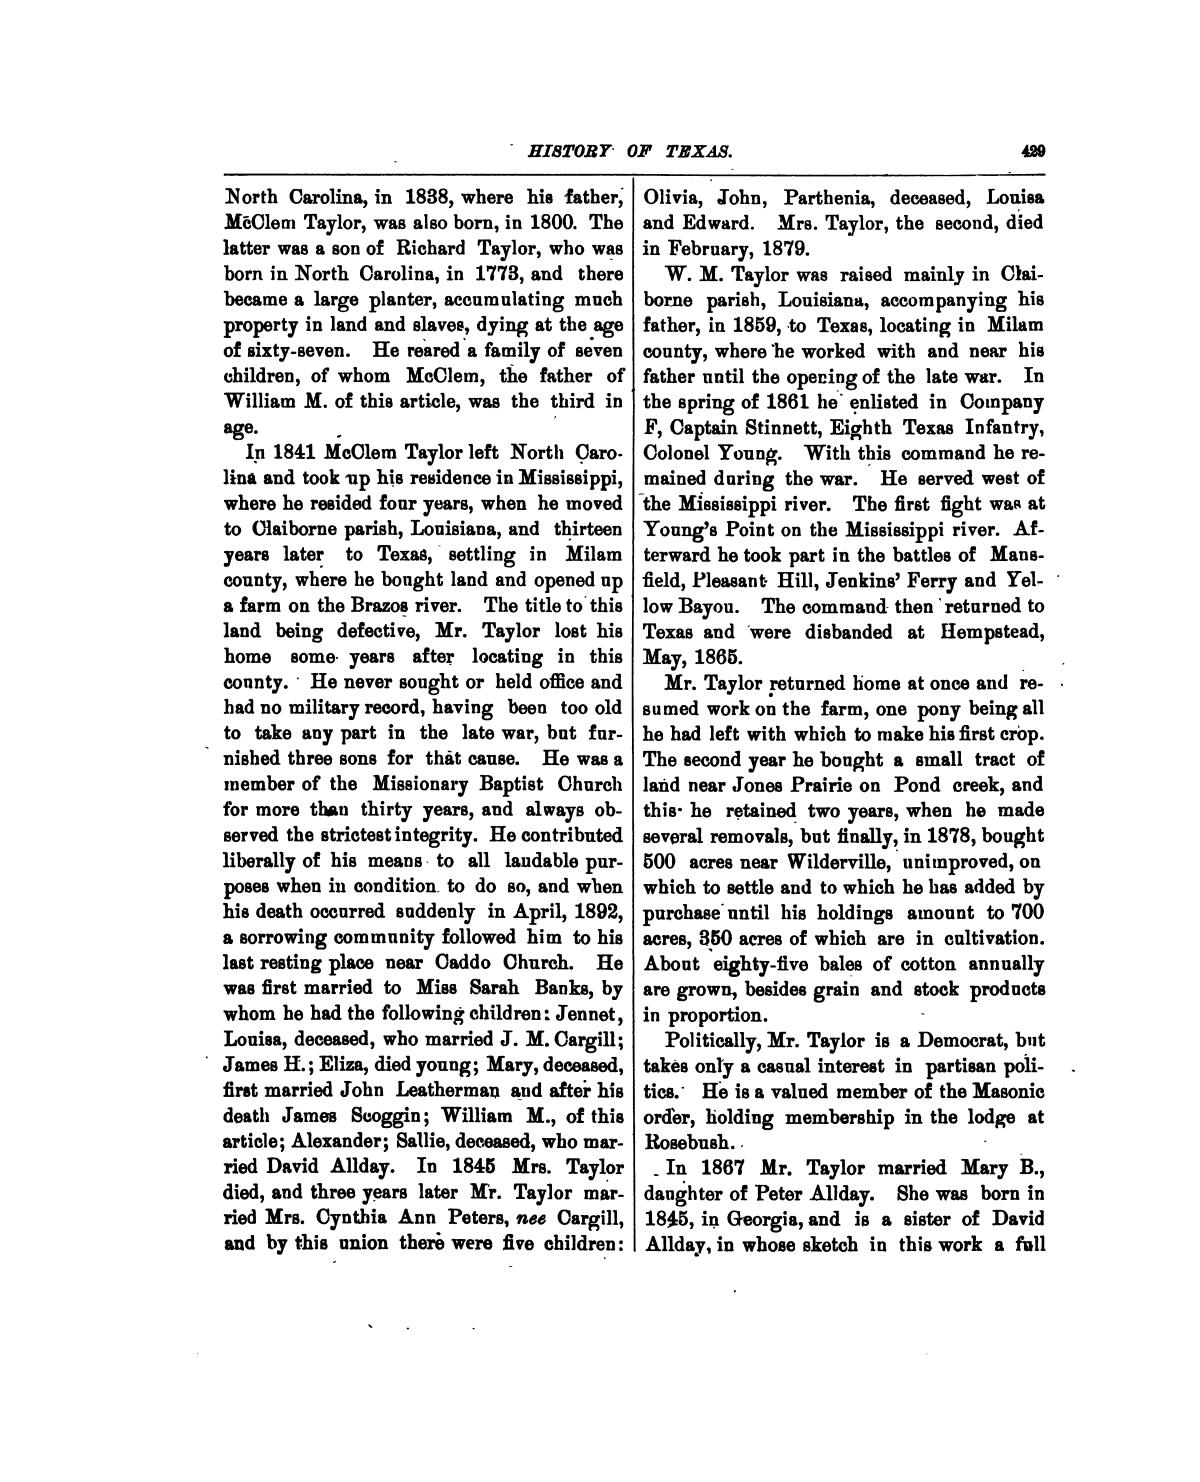 History of Texas, together with a biographical history of Milam, Williamson, Bastrop, Travis, Lee and Burleson counties : containing a concise history of the state, with portraits and biographies of prominent citizens of the above named counties, and personal histories of many of the early settlers and leading families                                                                                                      429